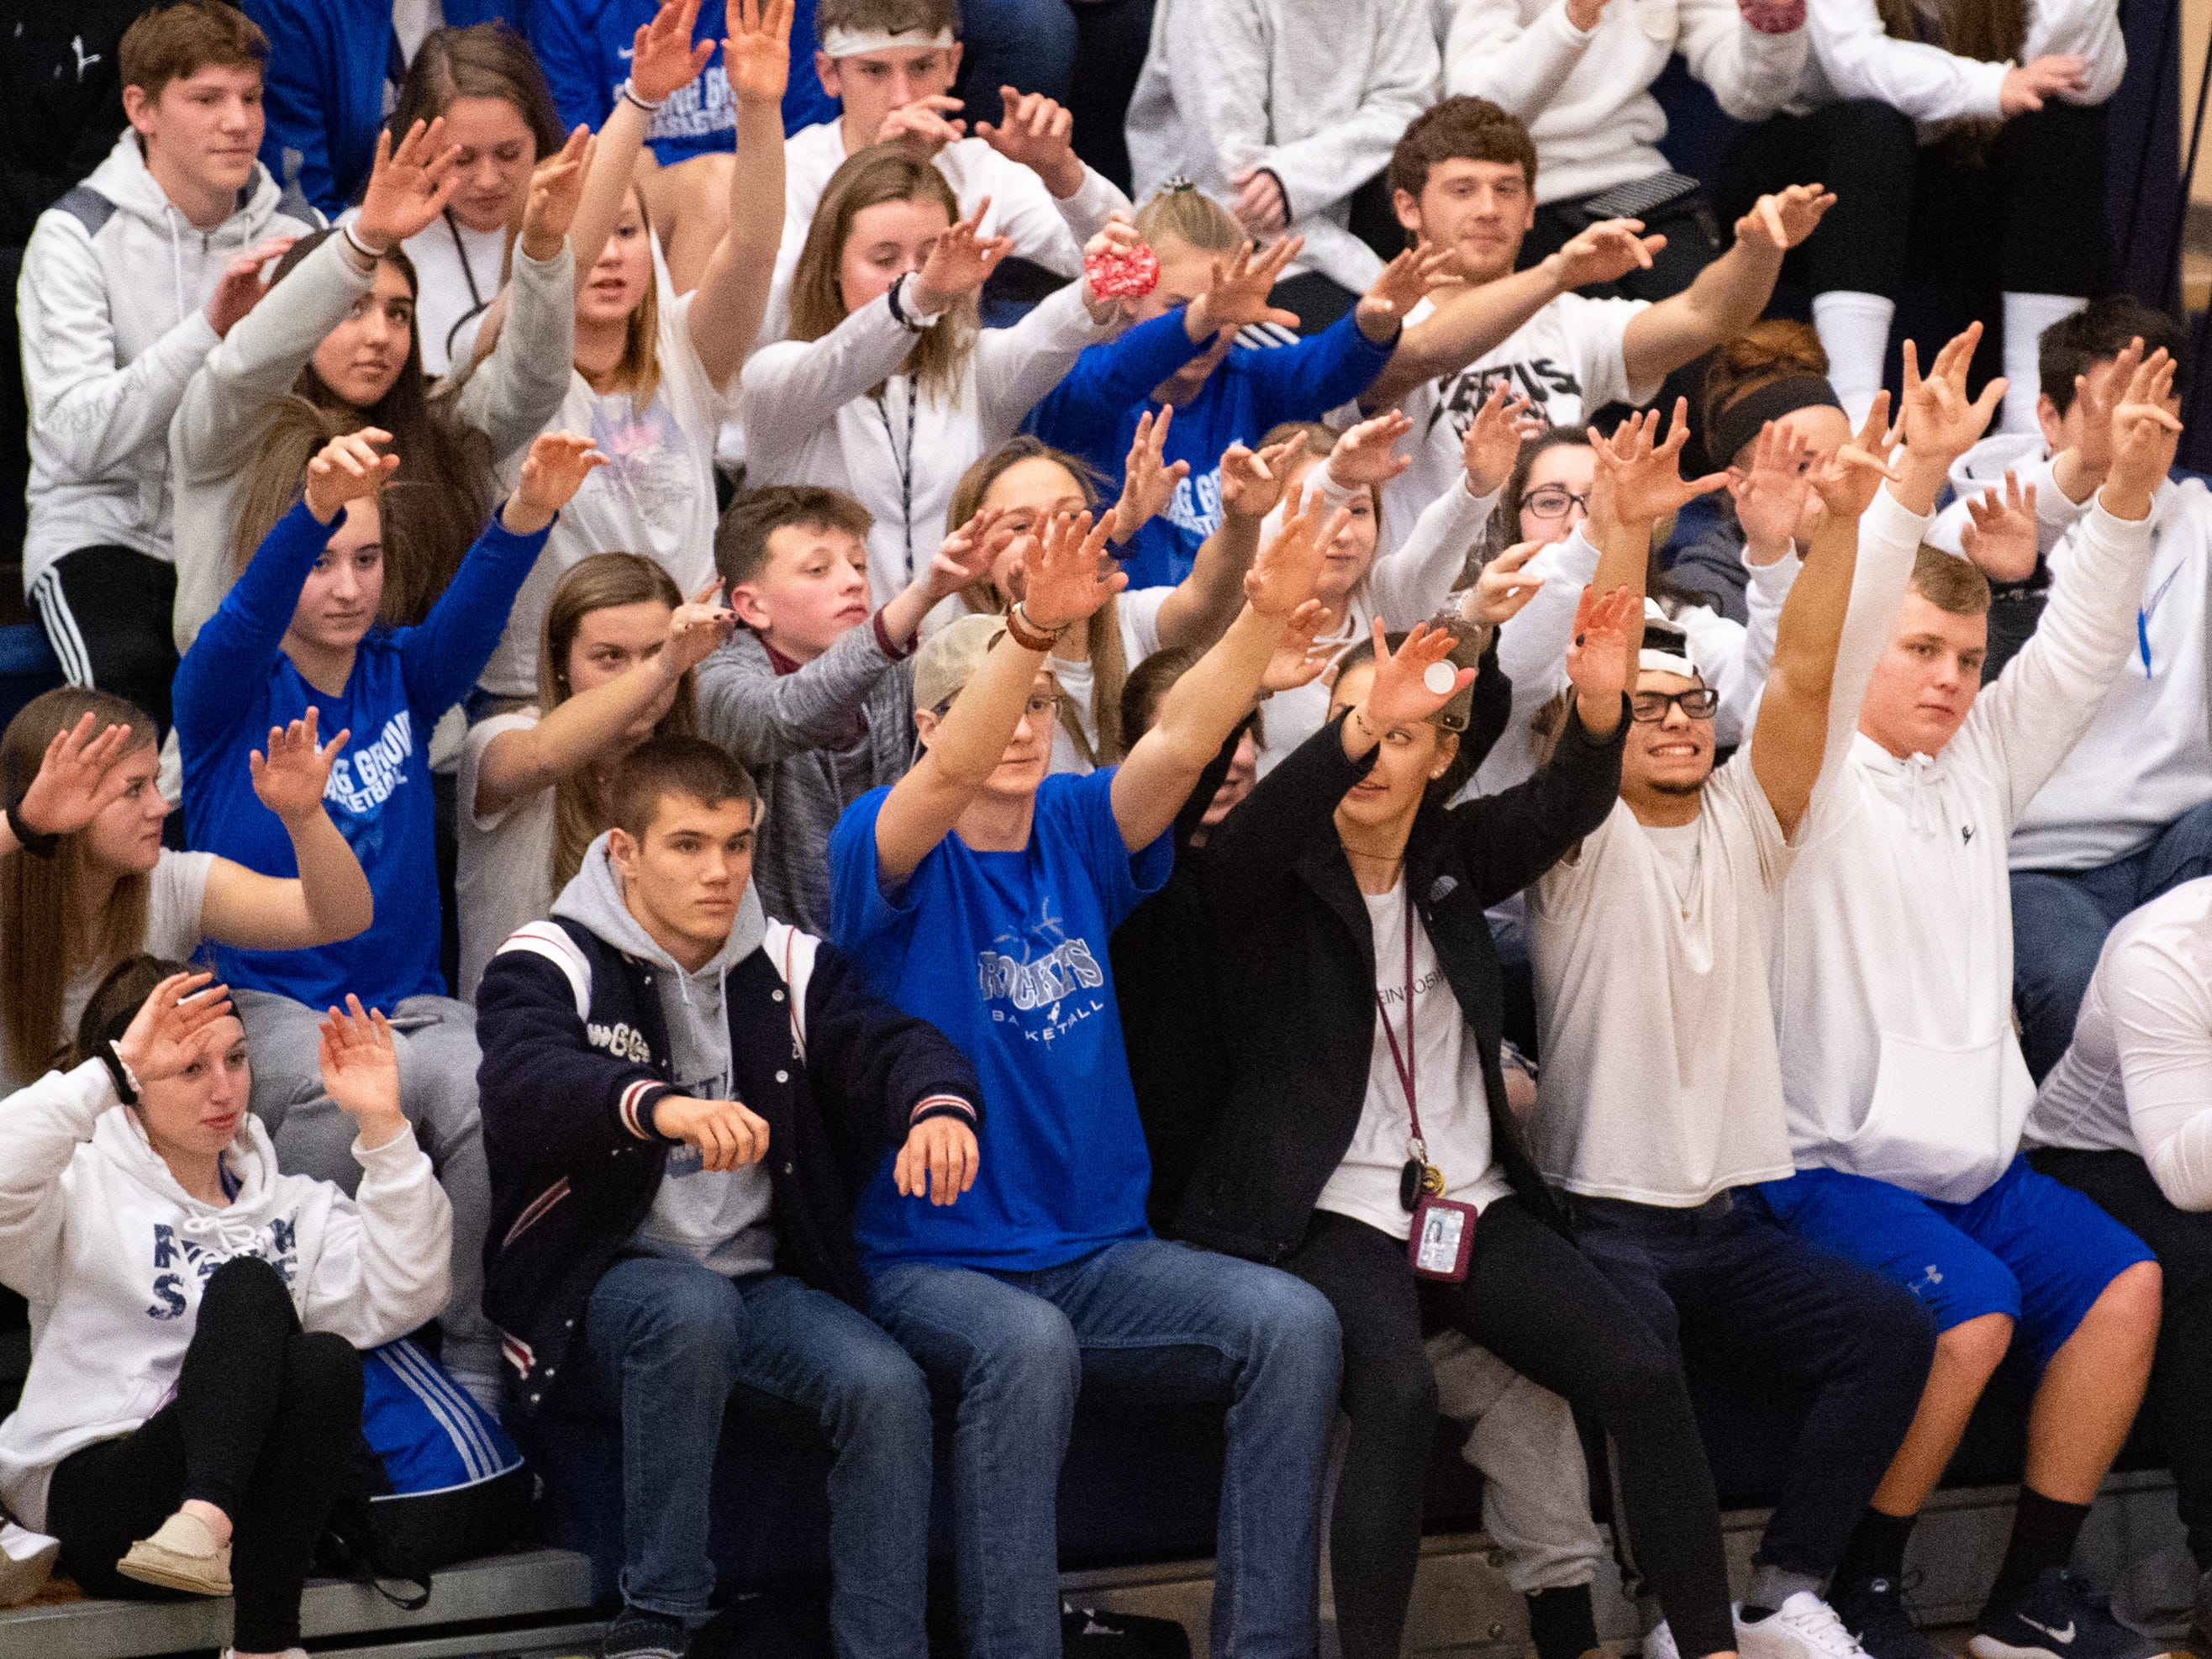 Spring Grove's student section cheers their team on during the girls' basketball game between Spring Grove and South Western, Friday, January 11, 2019. The Rockets defeated the Mustangs 51 to 38.